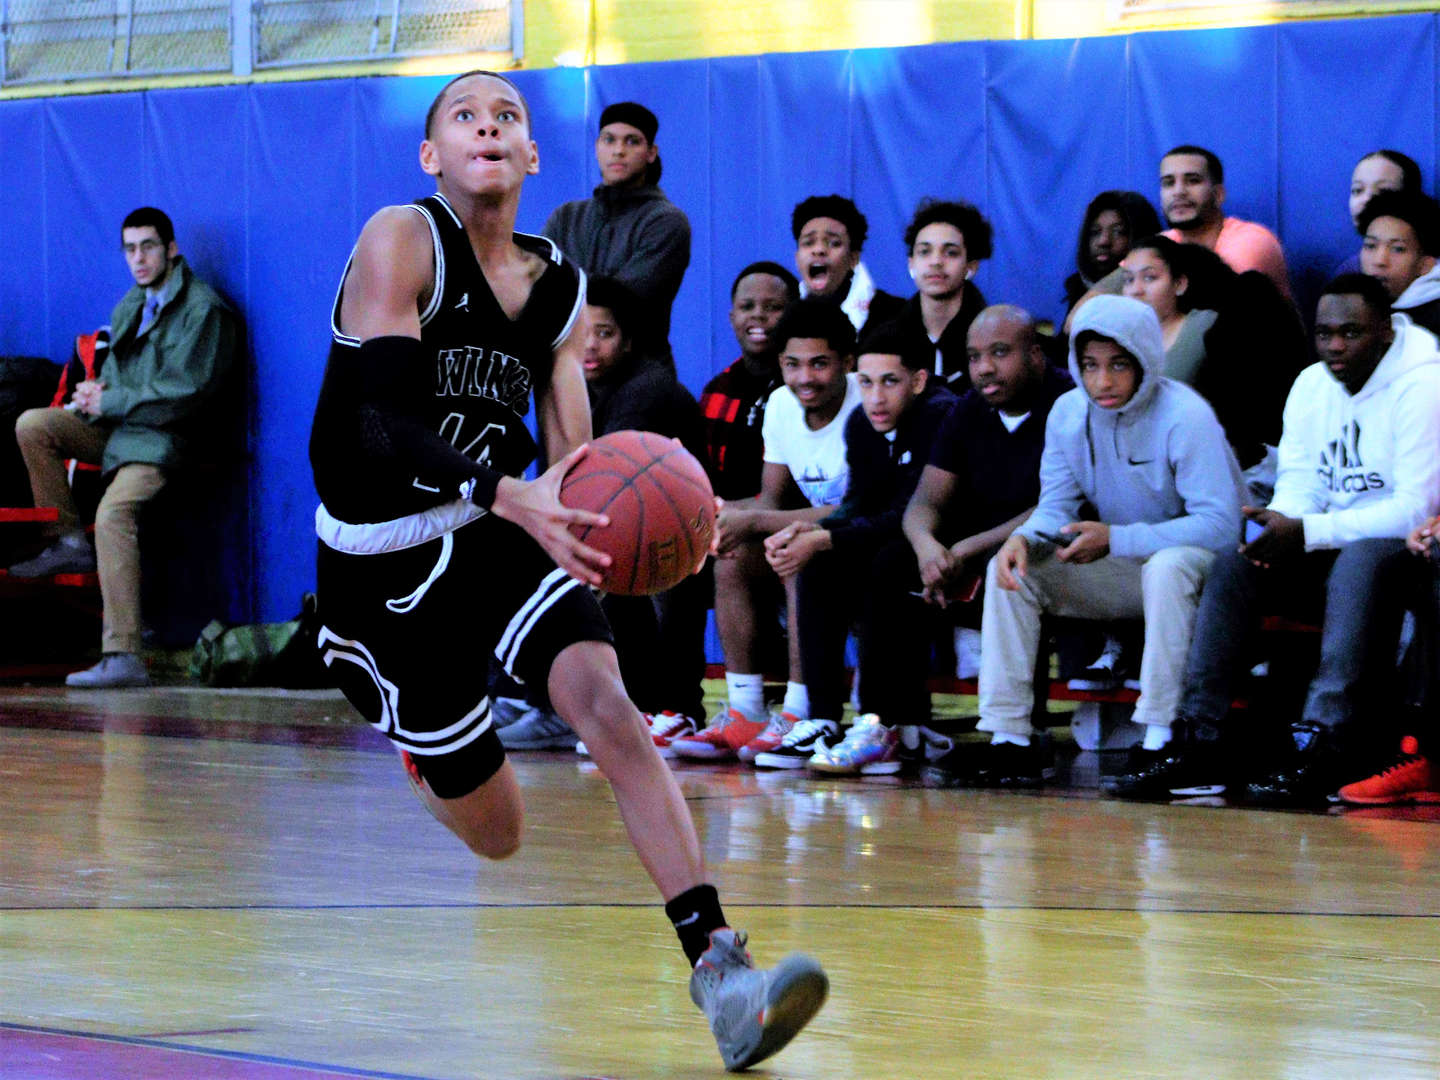 player running in the court